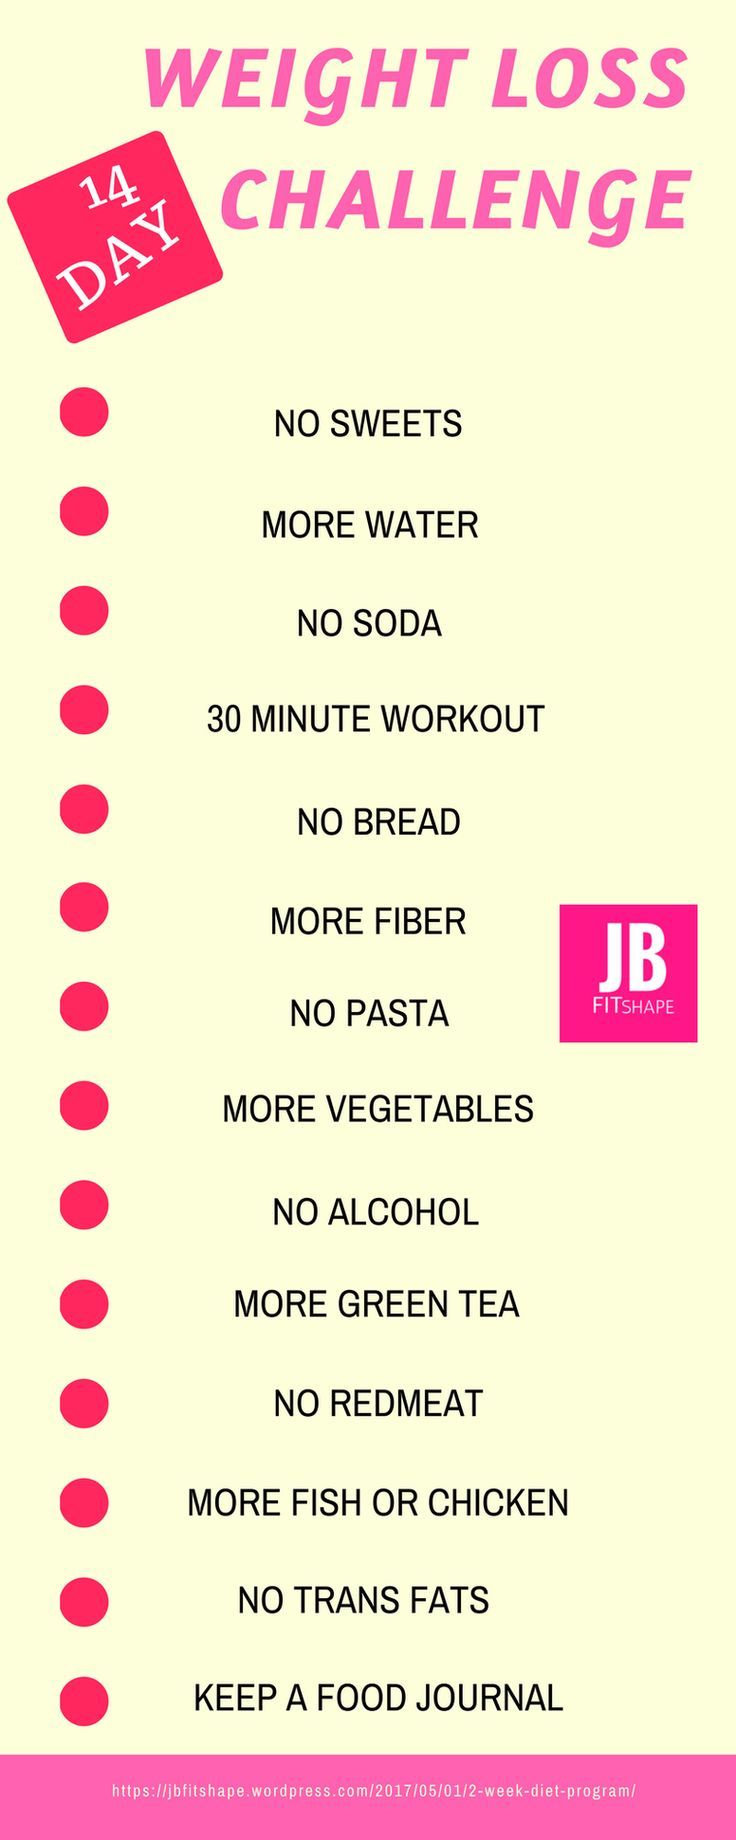 WEIGHT LOSS CHALLENGE Diet | Fitness | Weight Loss https://jbfitshape.wordpress.com/2017/05/01/2-week-diet-program/